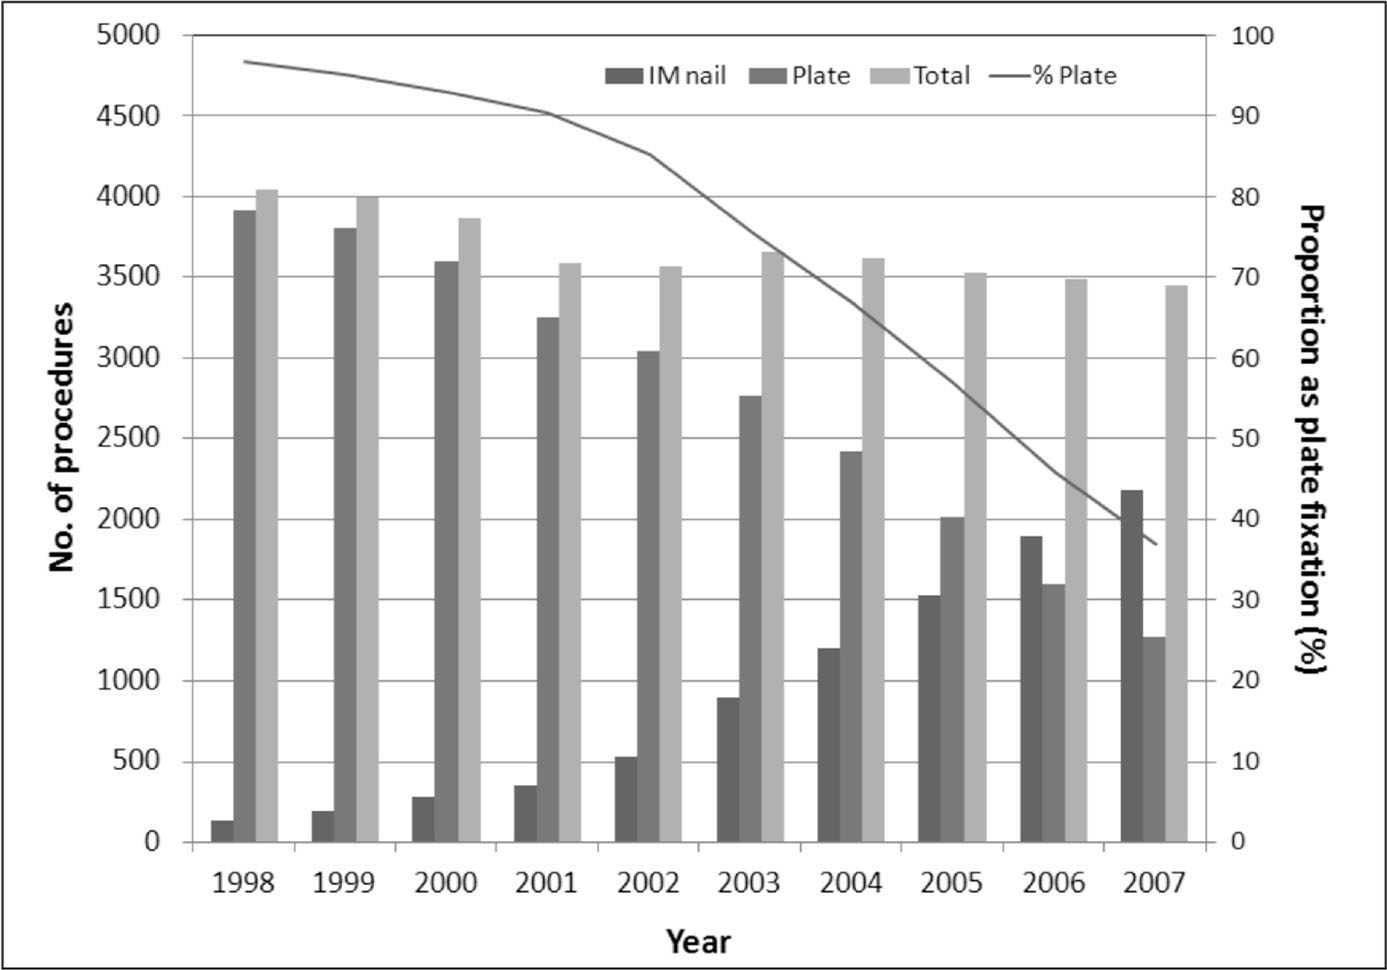 Proportion of intertrochanteric hip fractures treated with intramedullary (IM) nails compared with plates.